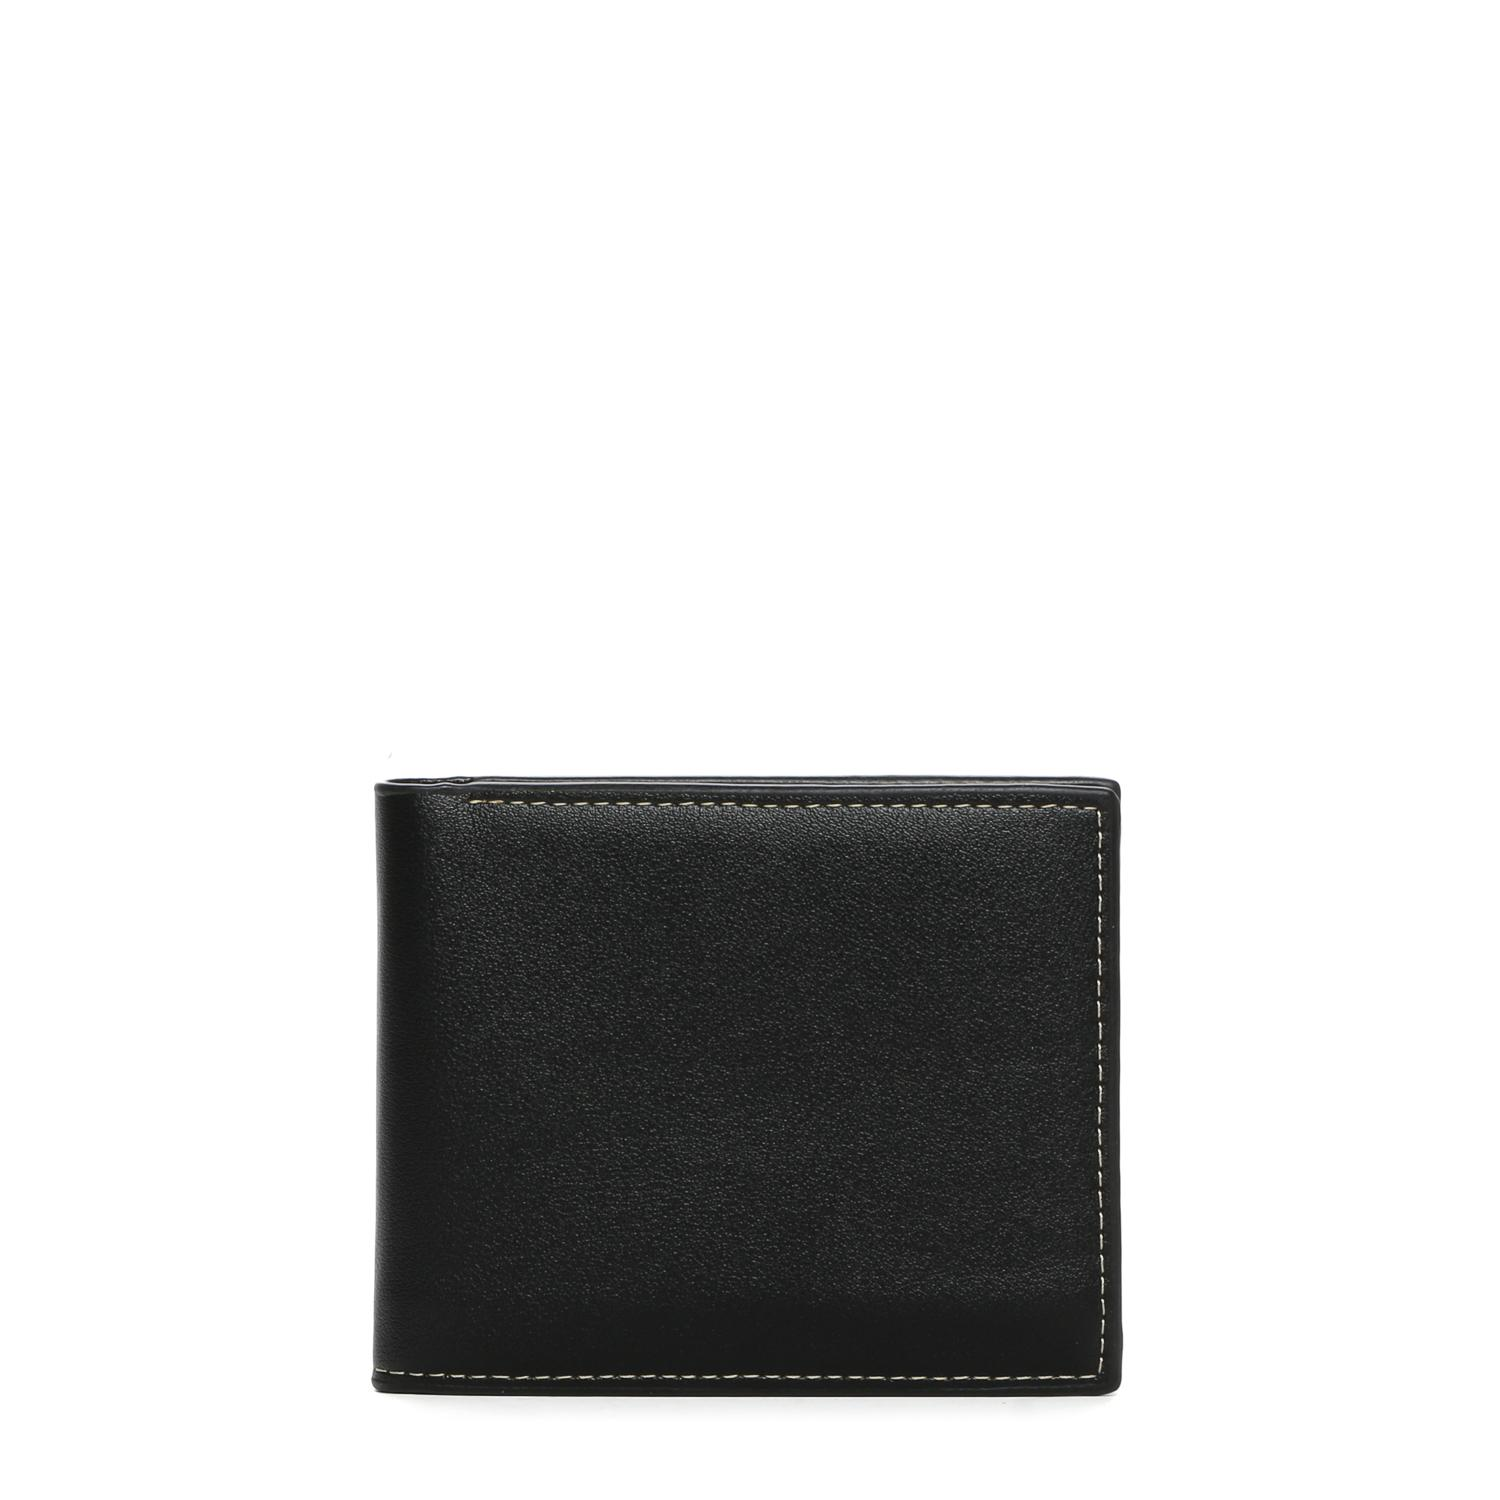 83caa92d784a SM Accessories Philippines: SM Accessories price list - Bags, Purses ...